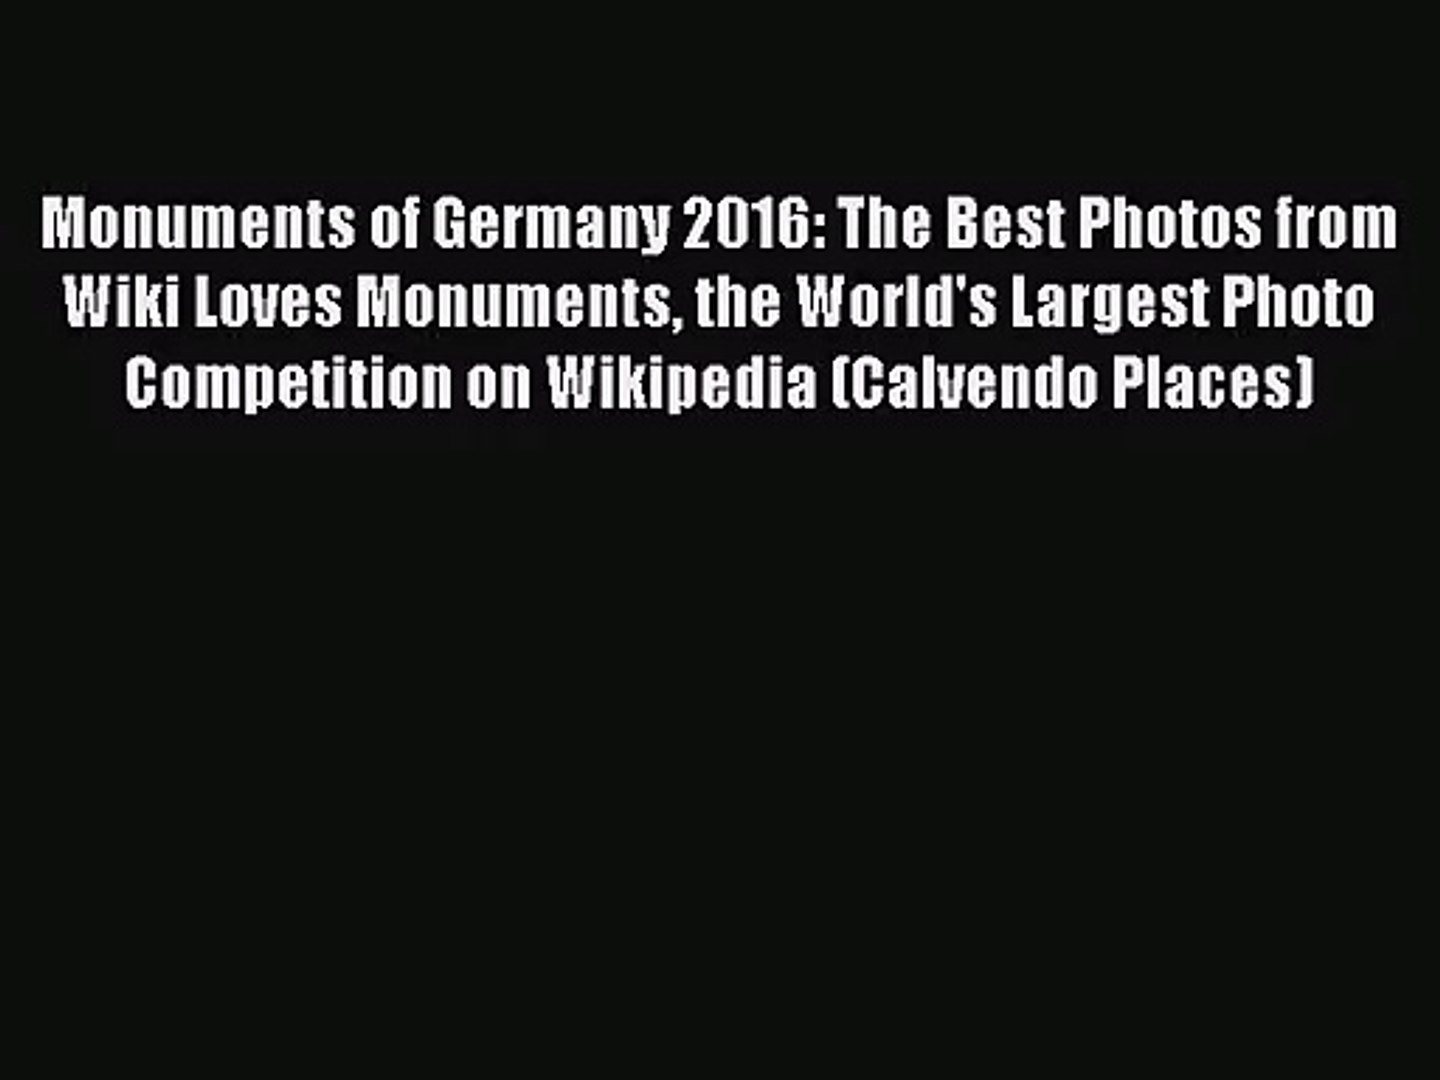 PDF Download - Monuments of Germany 2016: The Best Photos from Wiki Loves  Monuments the World's